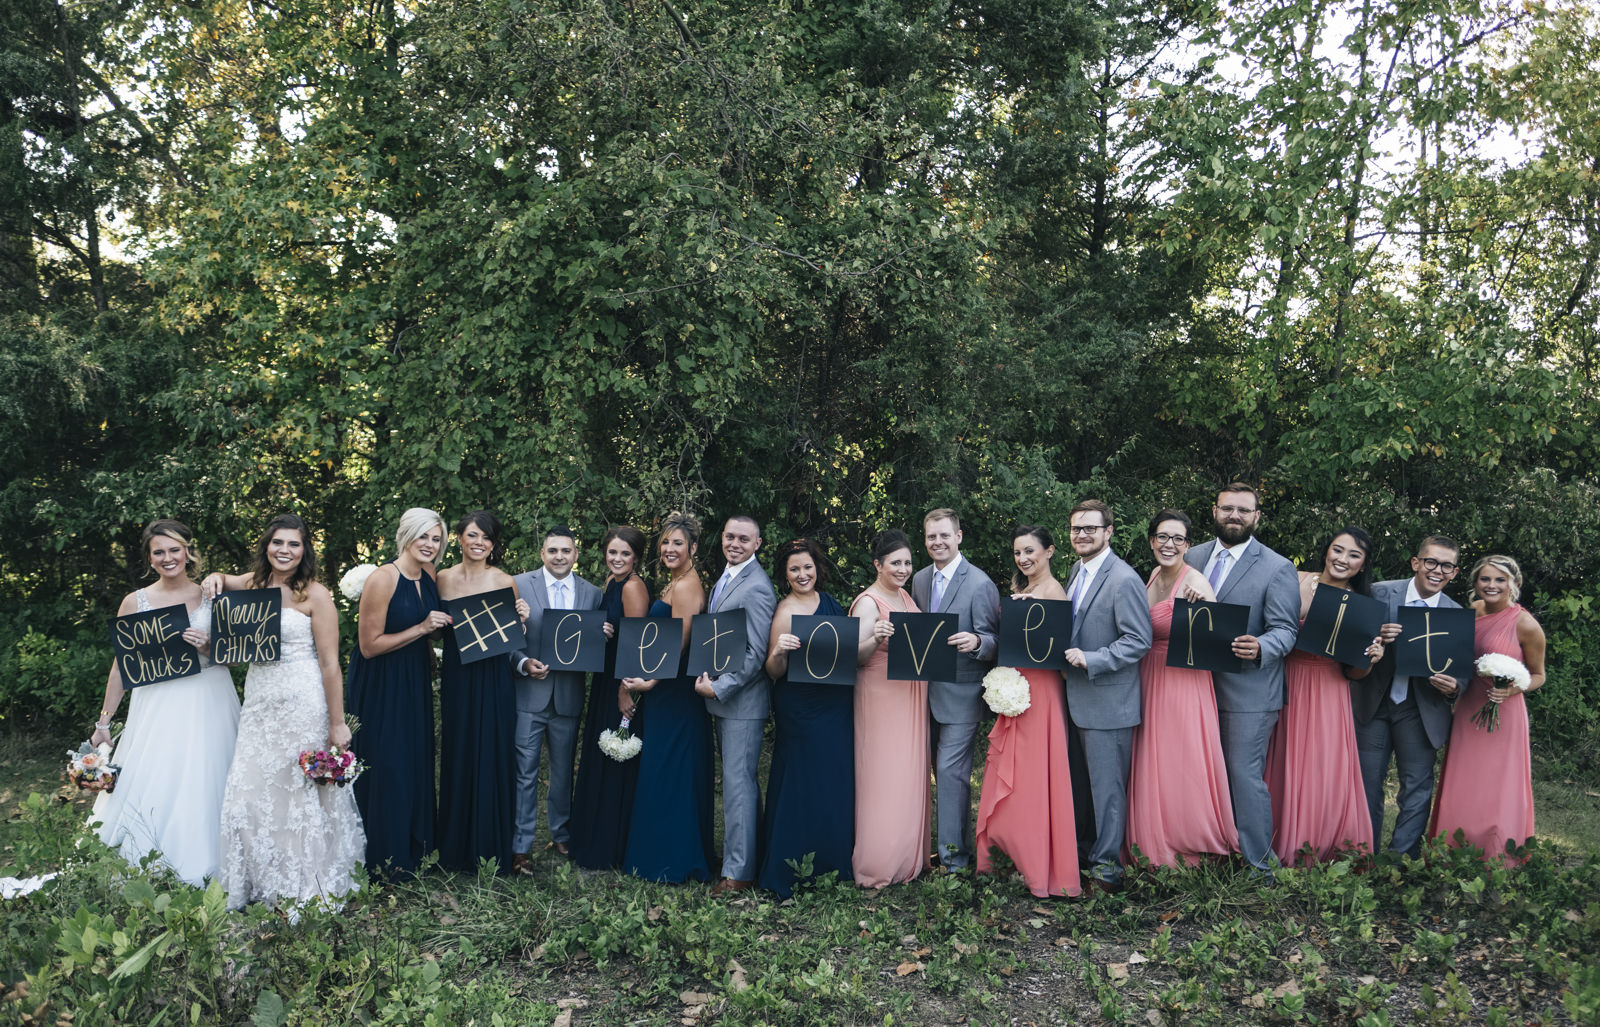 Bridal party holds up signs that say, Some chicks marry chicks, #getoverit for lesbian wedding in northwest Ohio